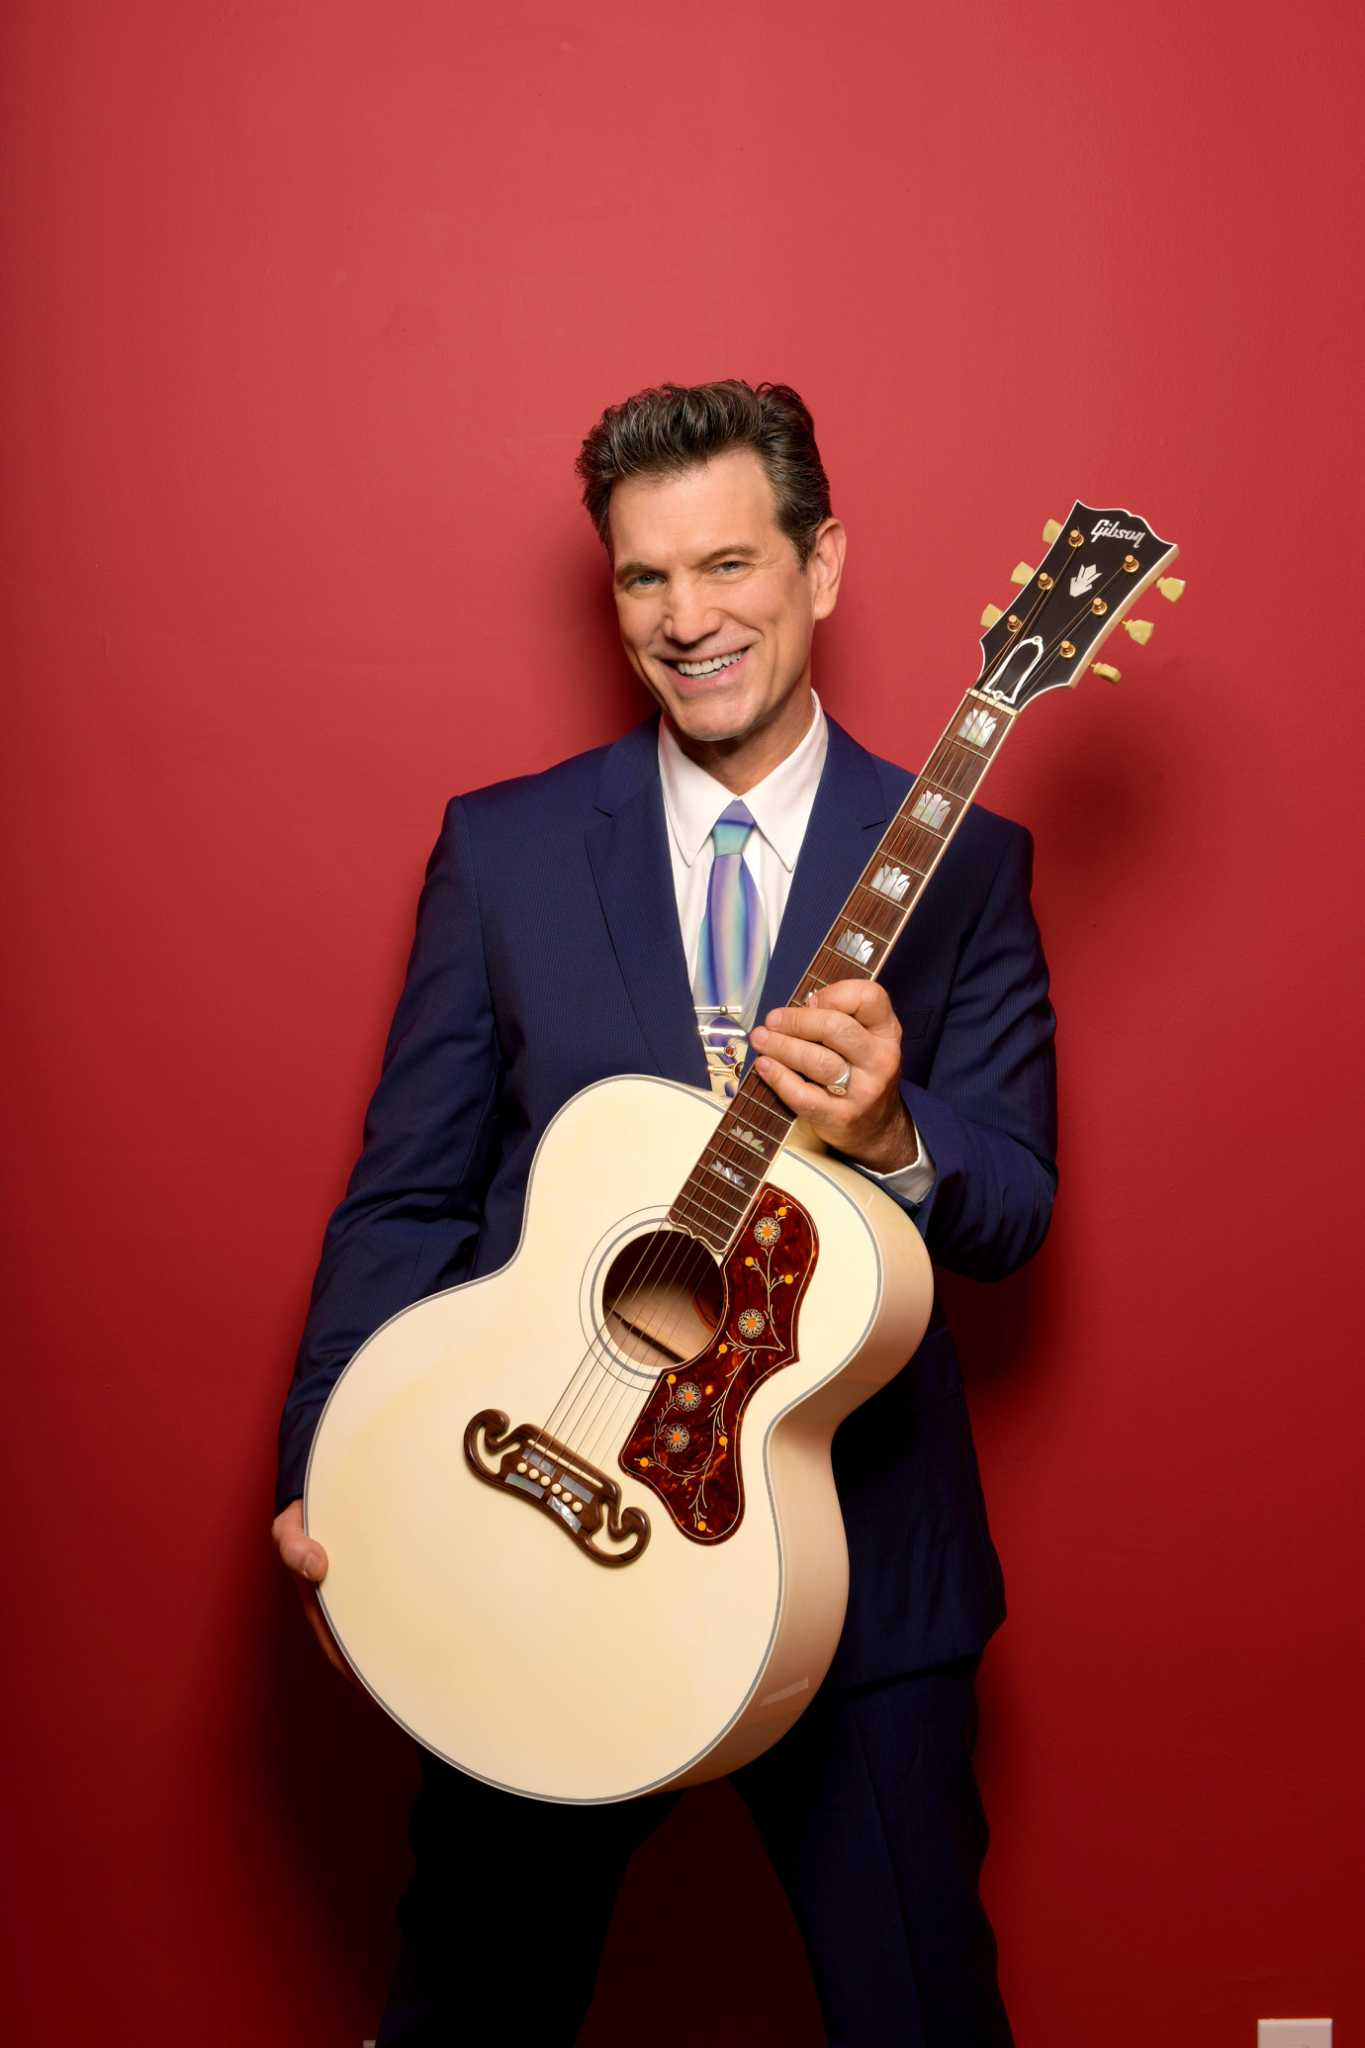 Christmas is coming early when Chris Isaak heads to the